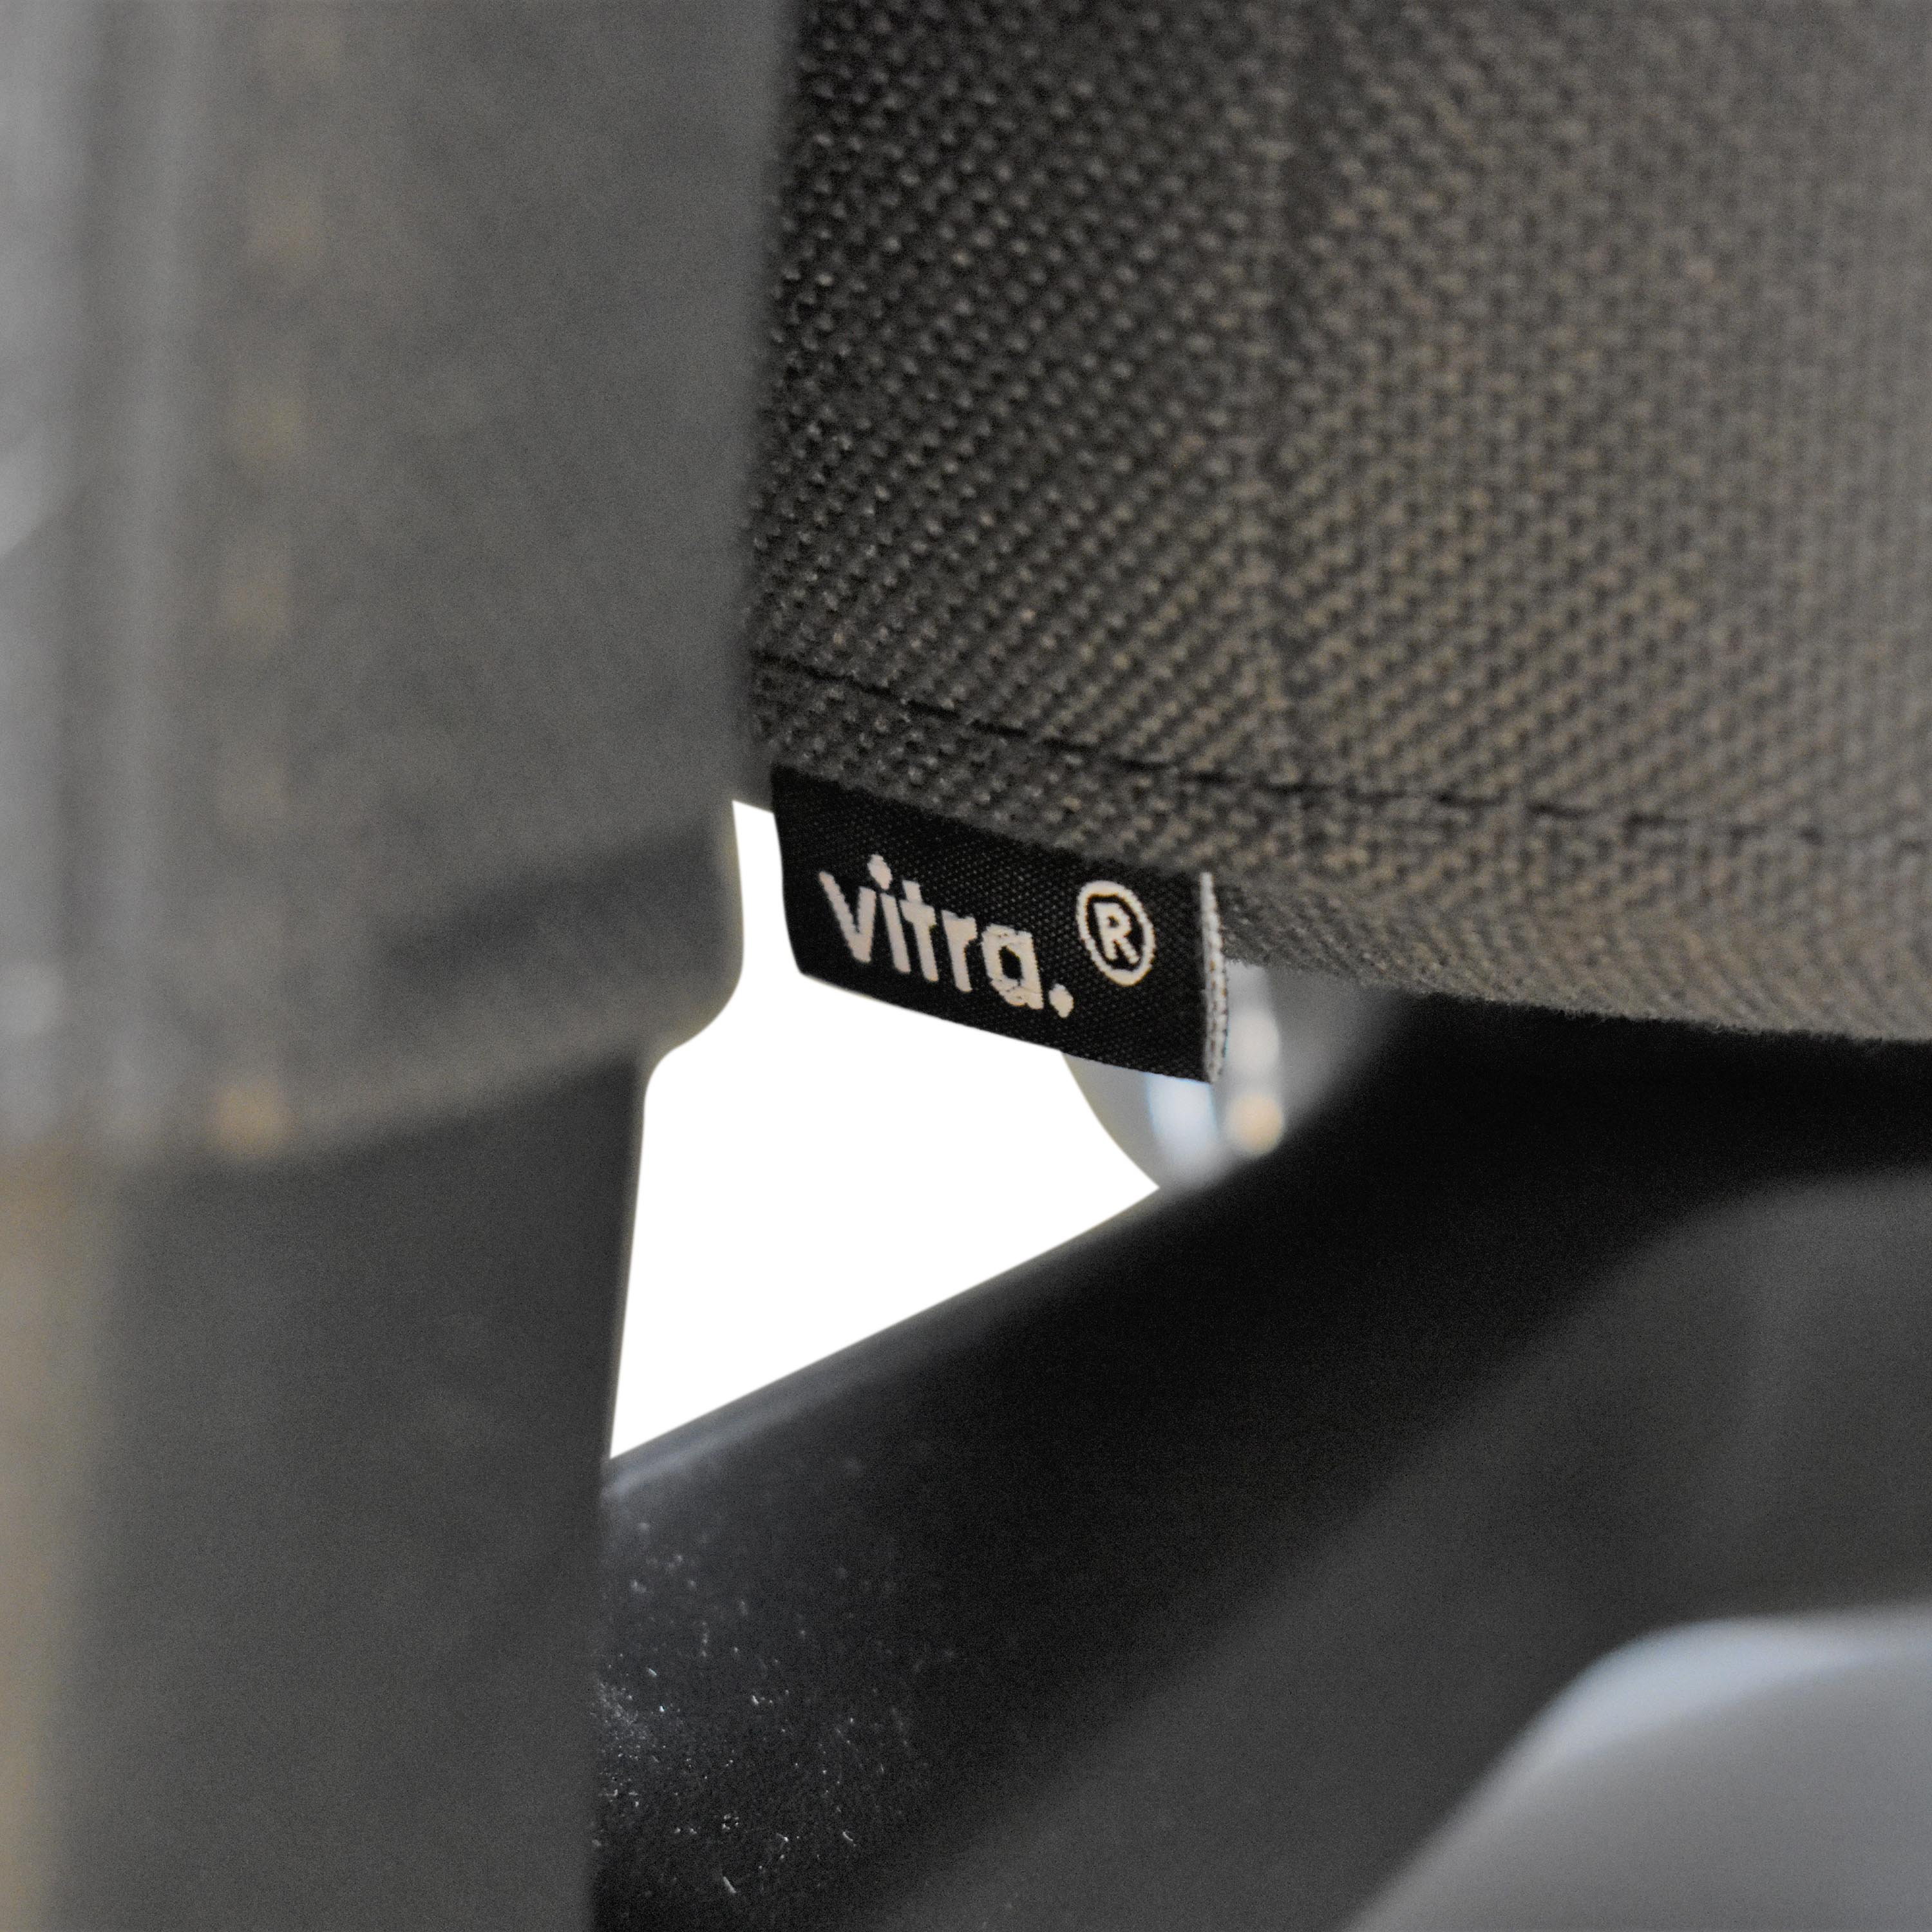 buy Vitra ID Trim Office Chair Vitra Home Office Chairs